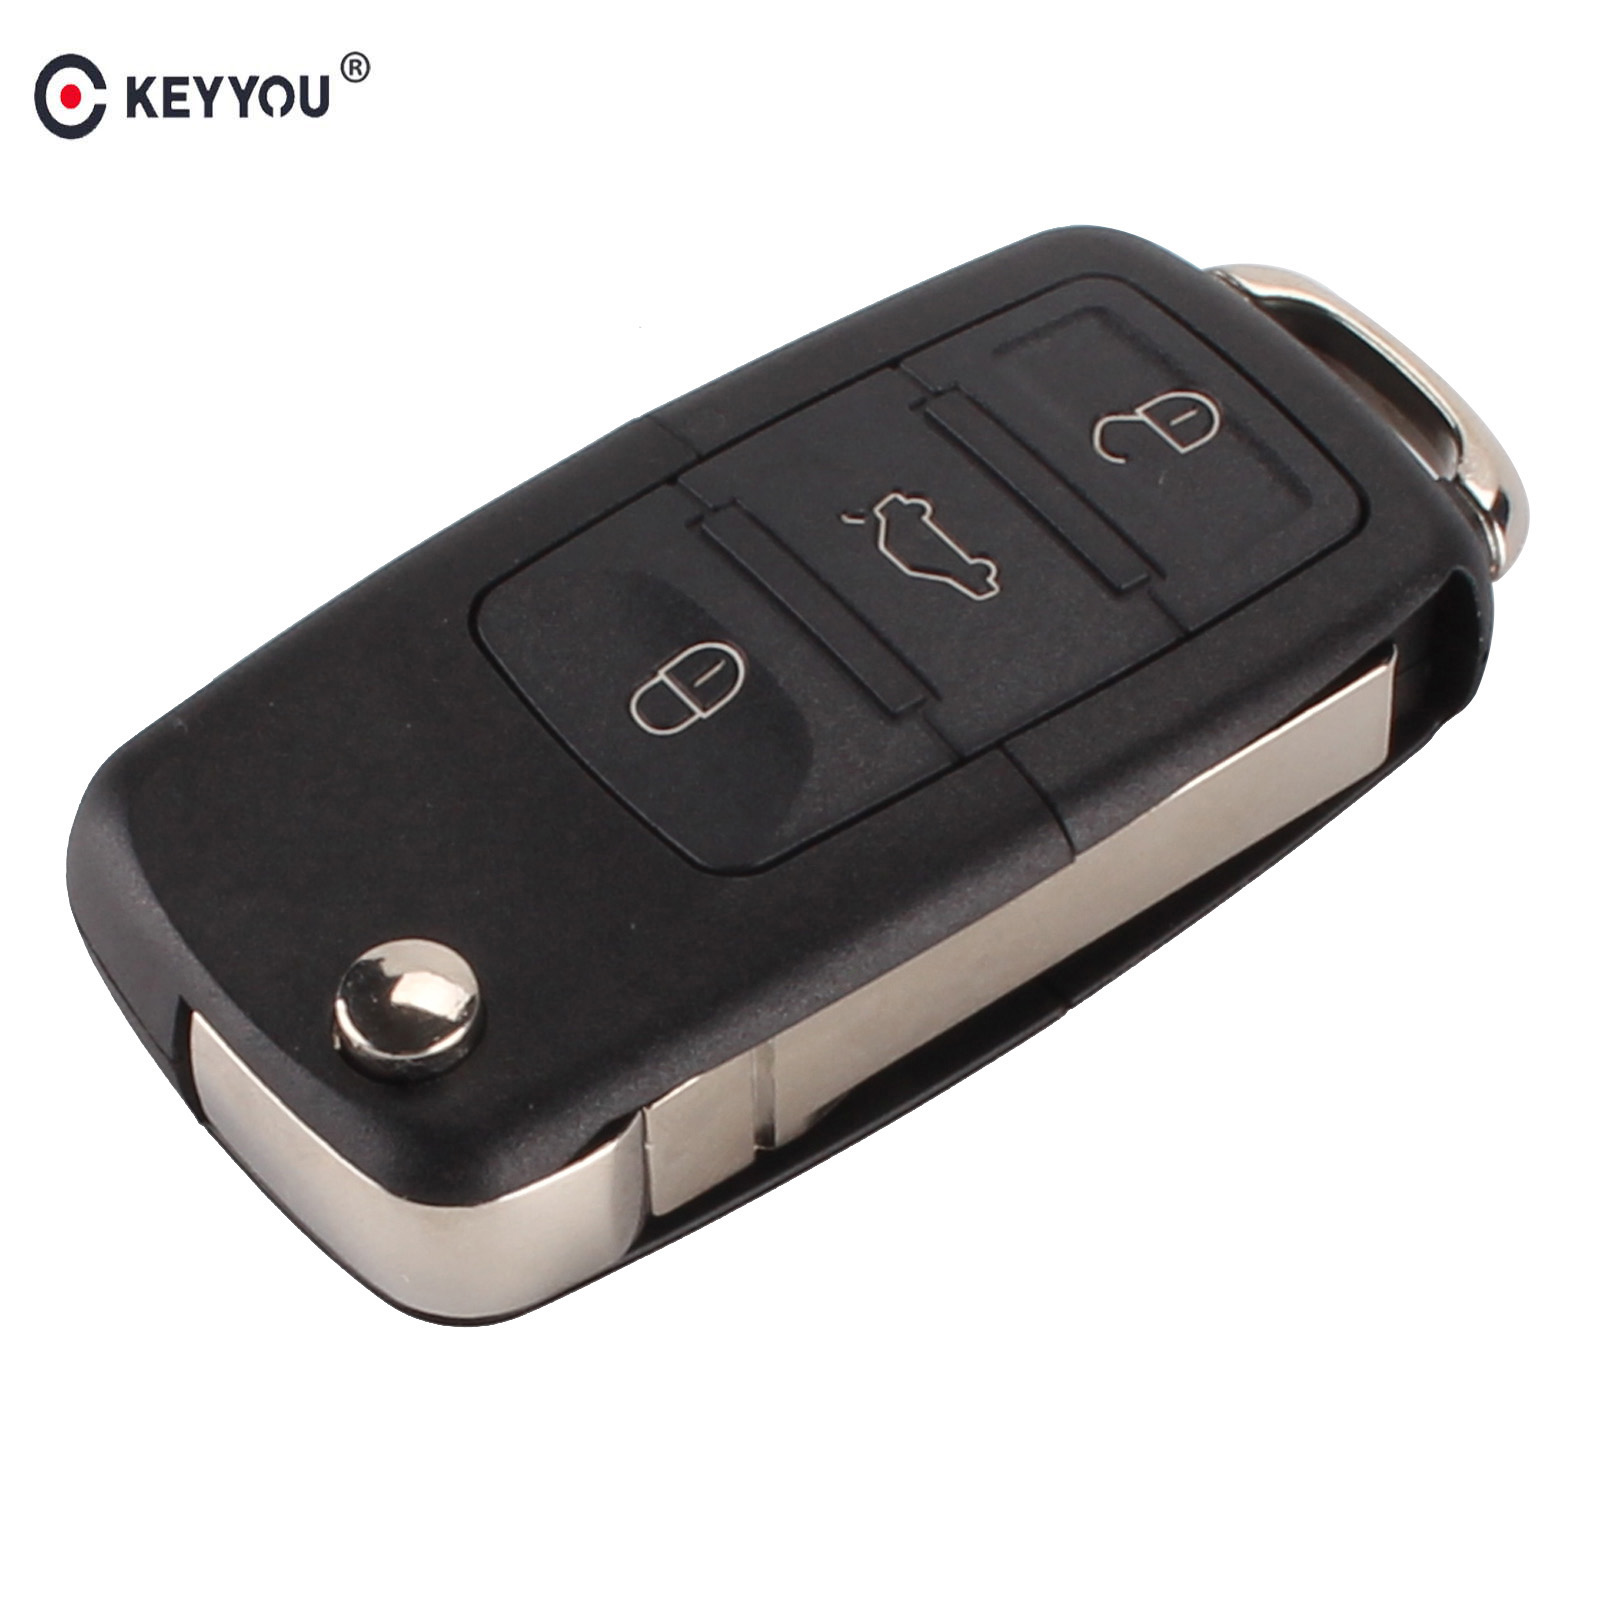 KEYYOU 3 button Folding Car Remote Flip Key Shell Case Fob For VW Passat Polo Golf Touran Bora Ibiza Leon Octavia Fabia  ...